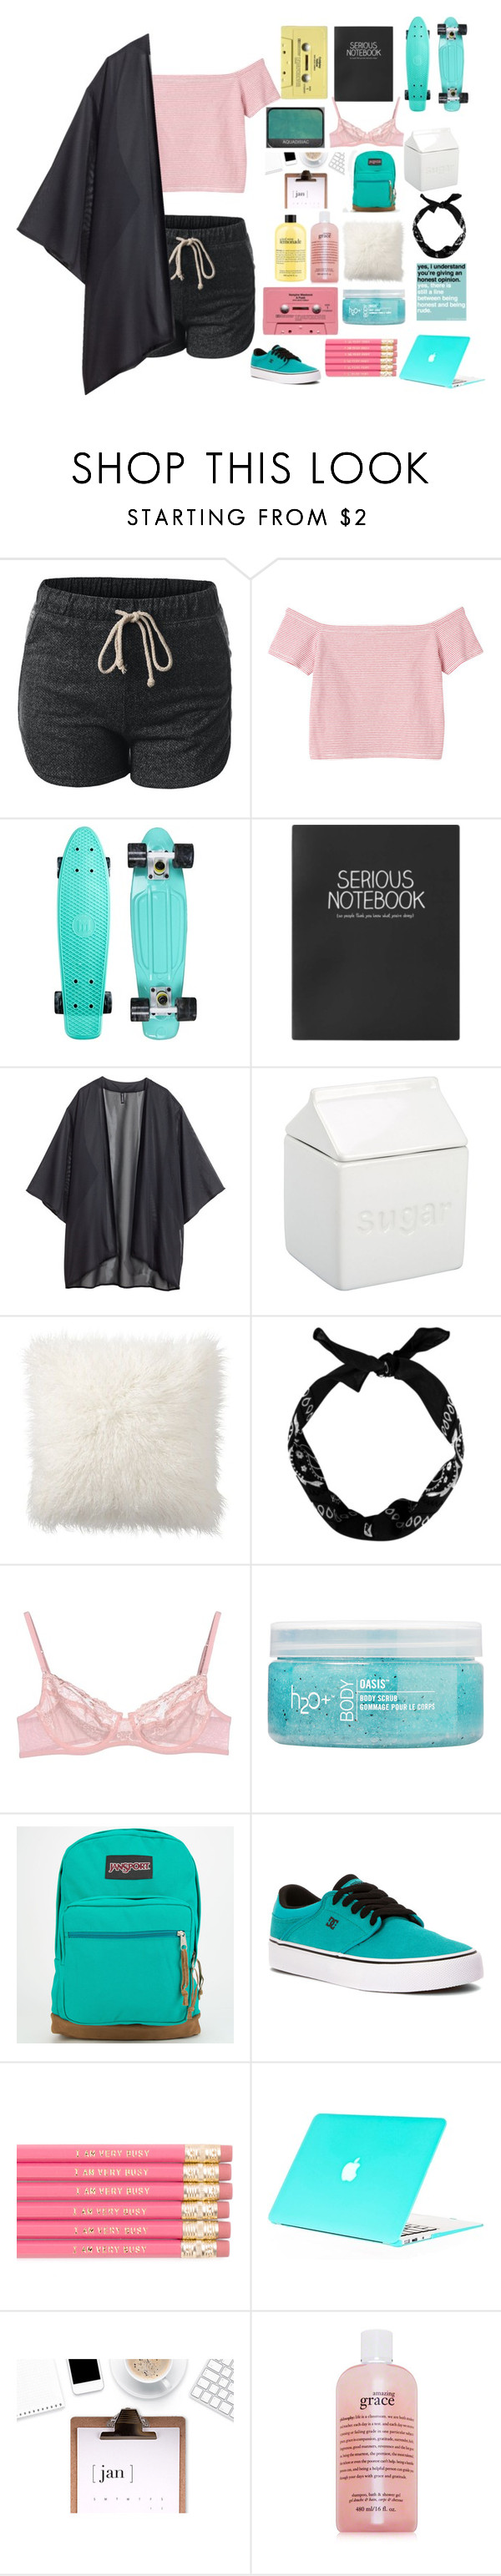 """Is it too late to say sorry?"" by bossbby11 ❤ liked on Polyvore featuring Monki, Topshop, H&M, BIA Cordon Bleu, Pottery Barn, La Perla, H2O+, JanSport, DC Shoes and philosophy"